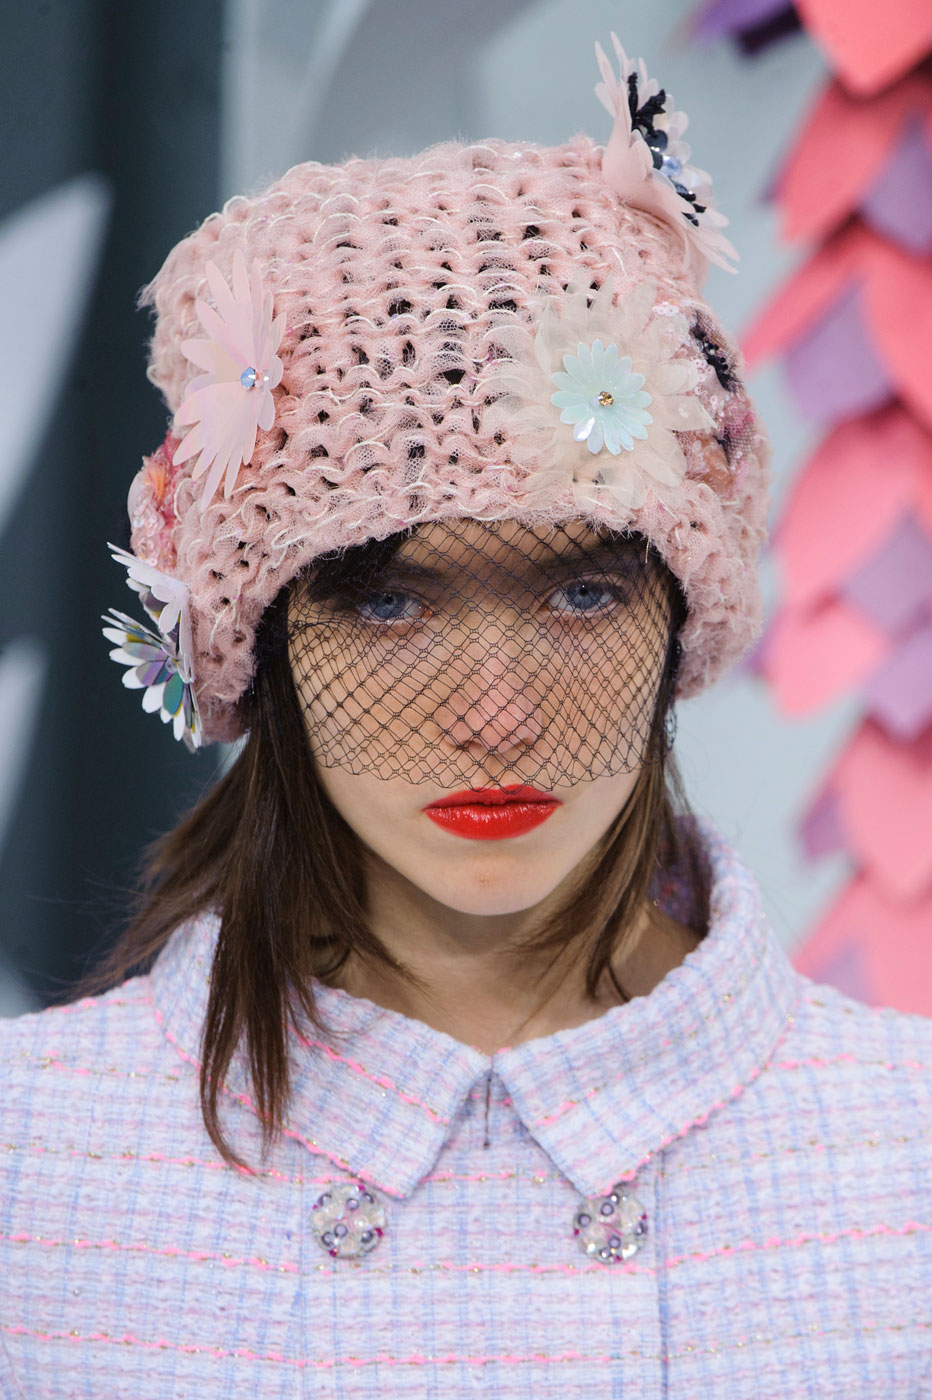 Chanel-fashion-runway-show-close-ups-haute-couture-paris-spring-summer-2015-the-impression-018